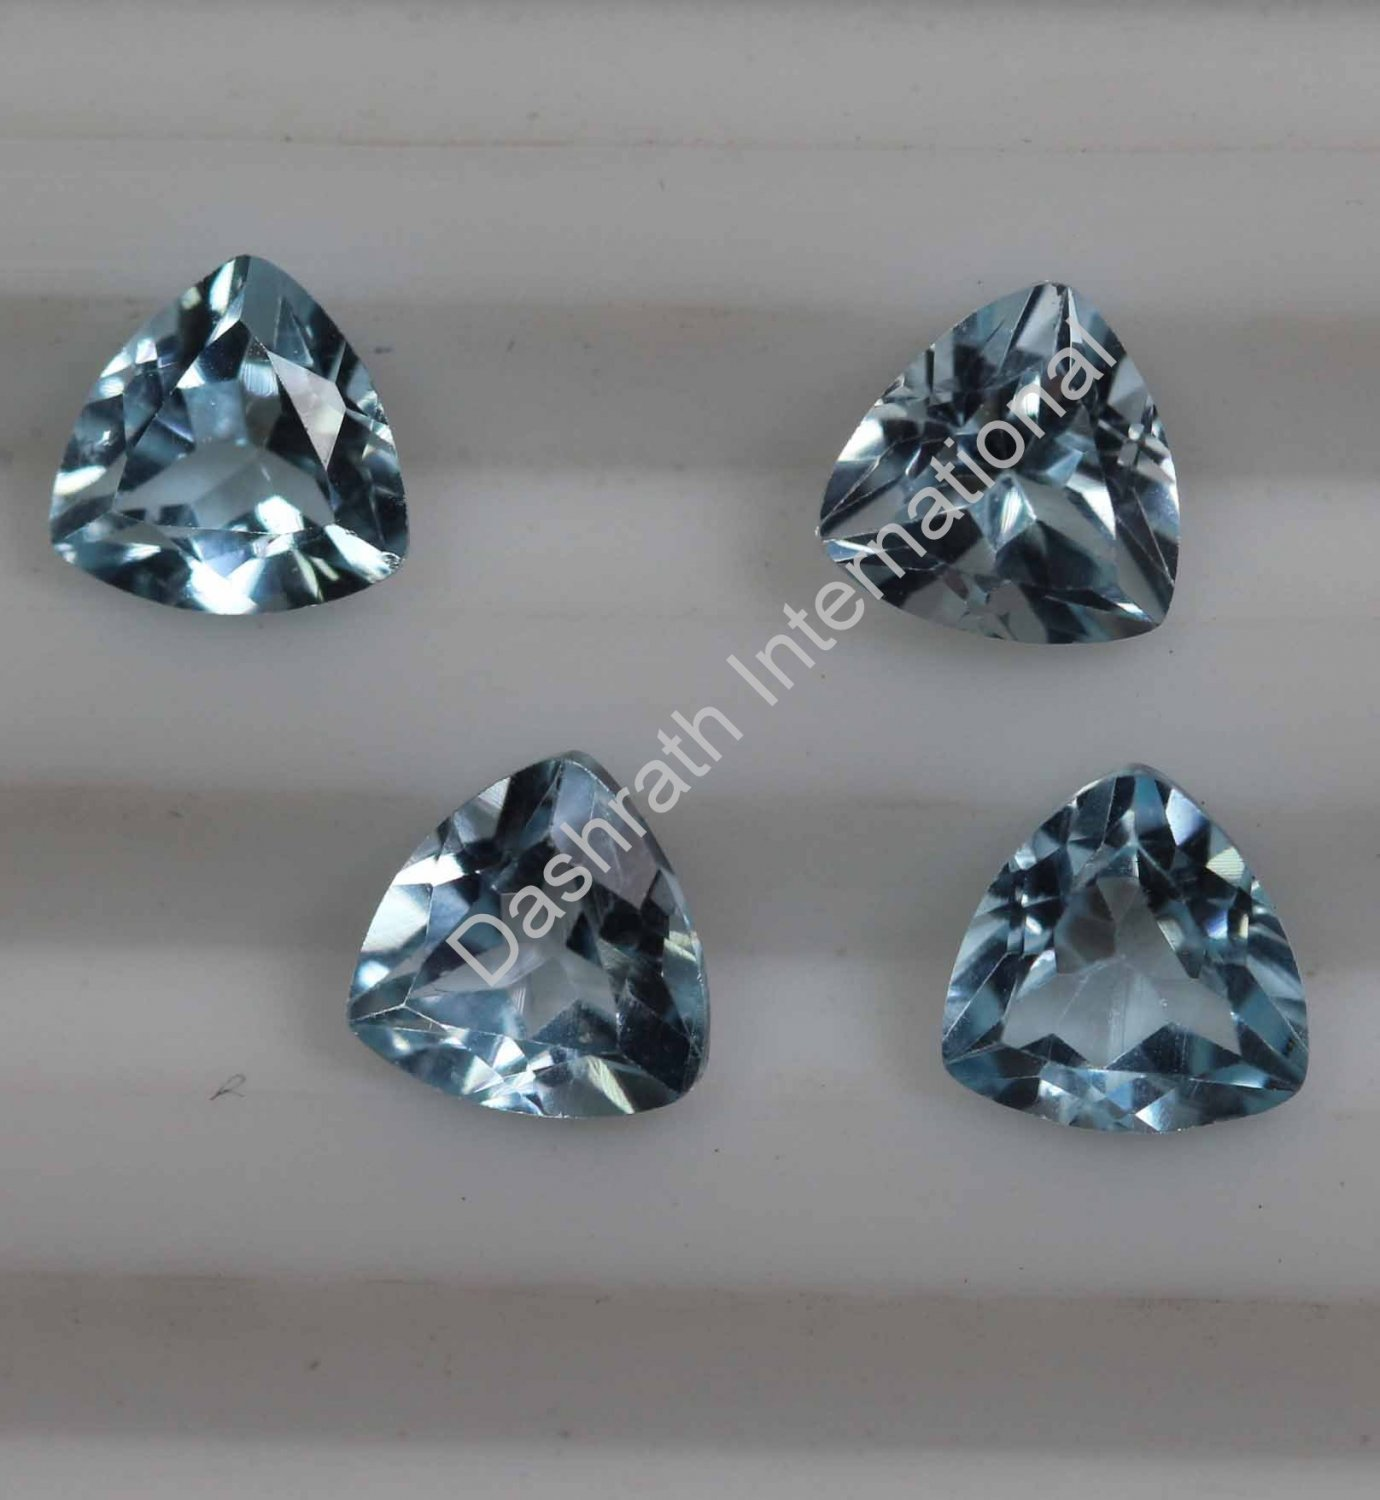 4mm Natural Sky Blue Topaz Faceted Cut Trillion 50 Pieces Lot Top Quality Loose Gemstone